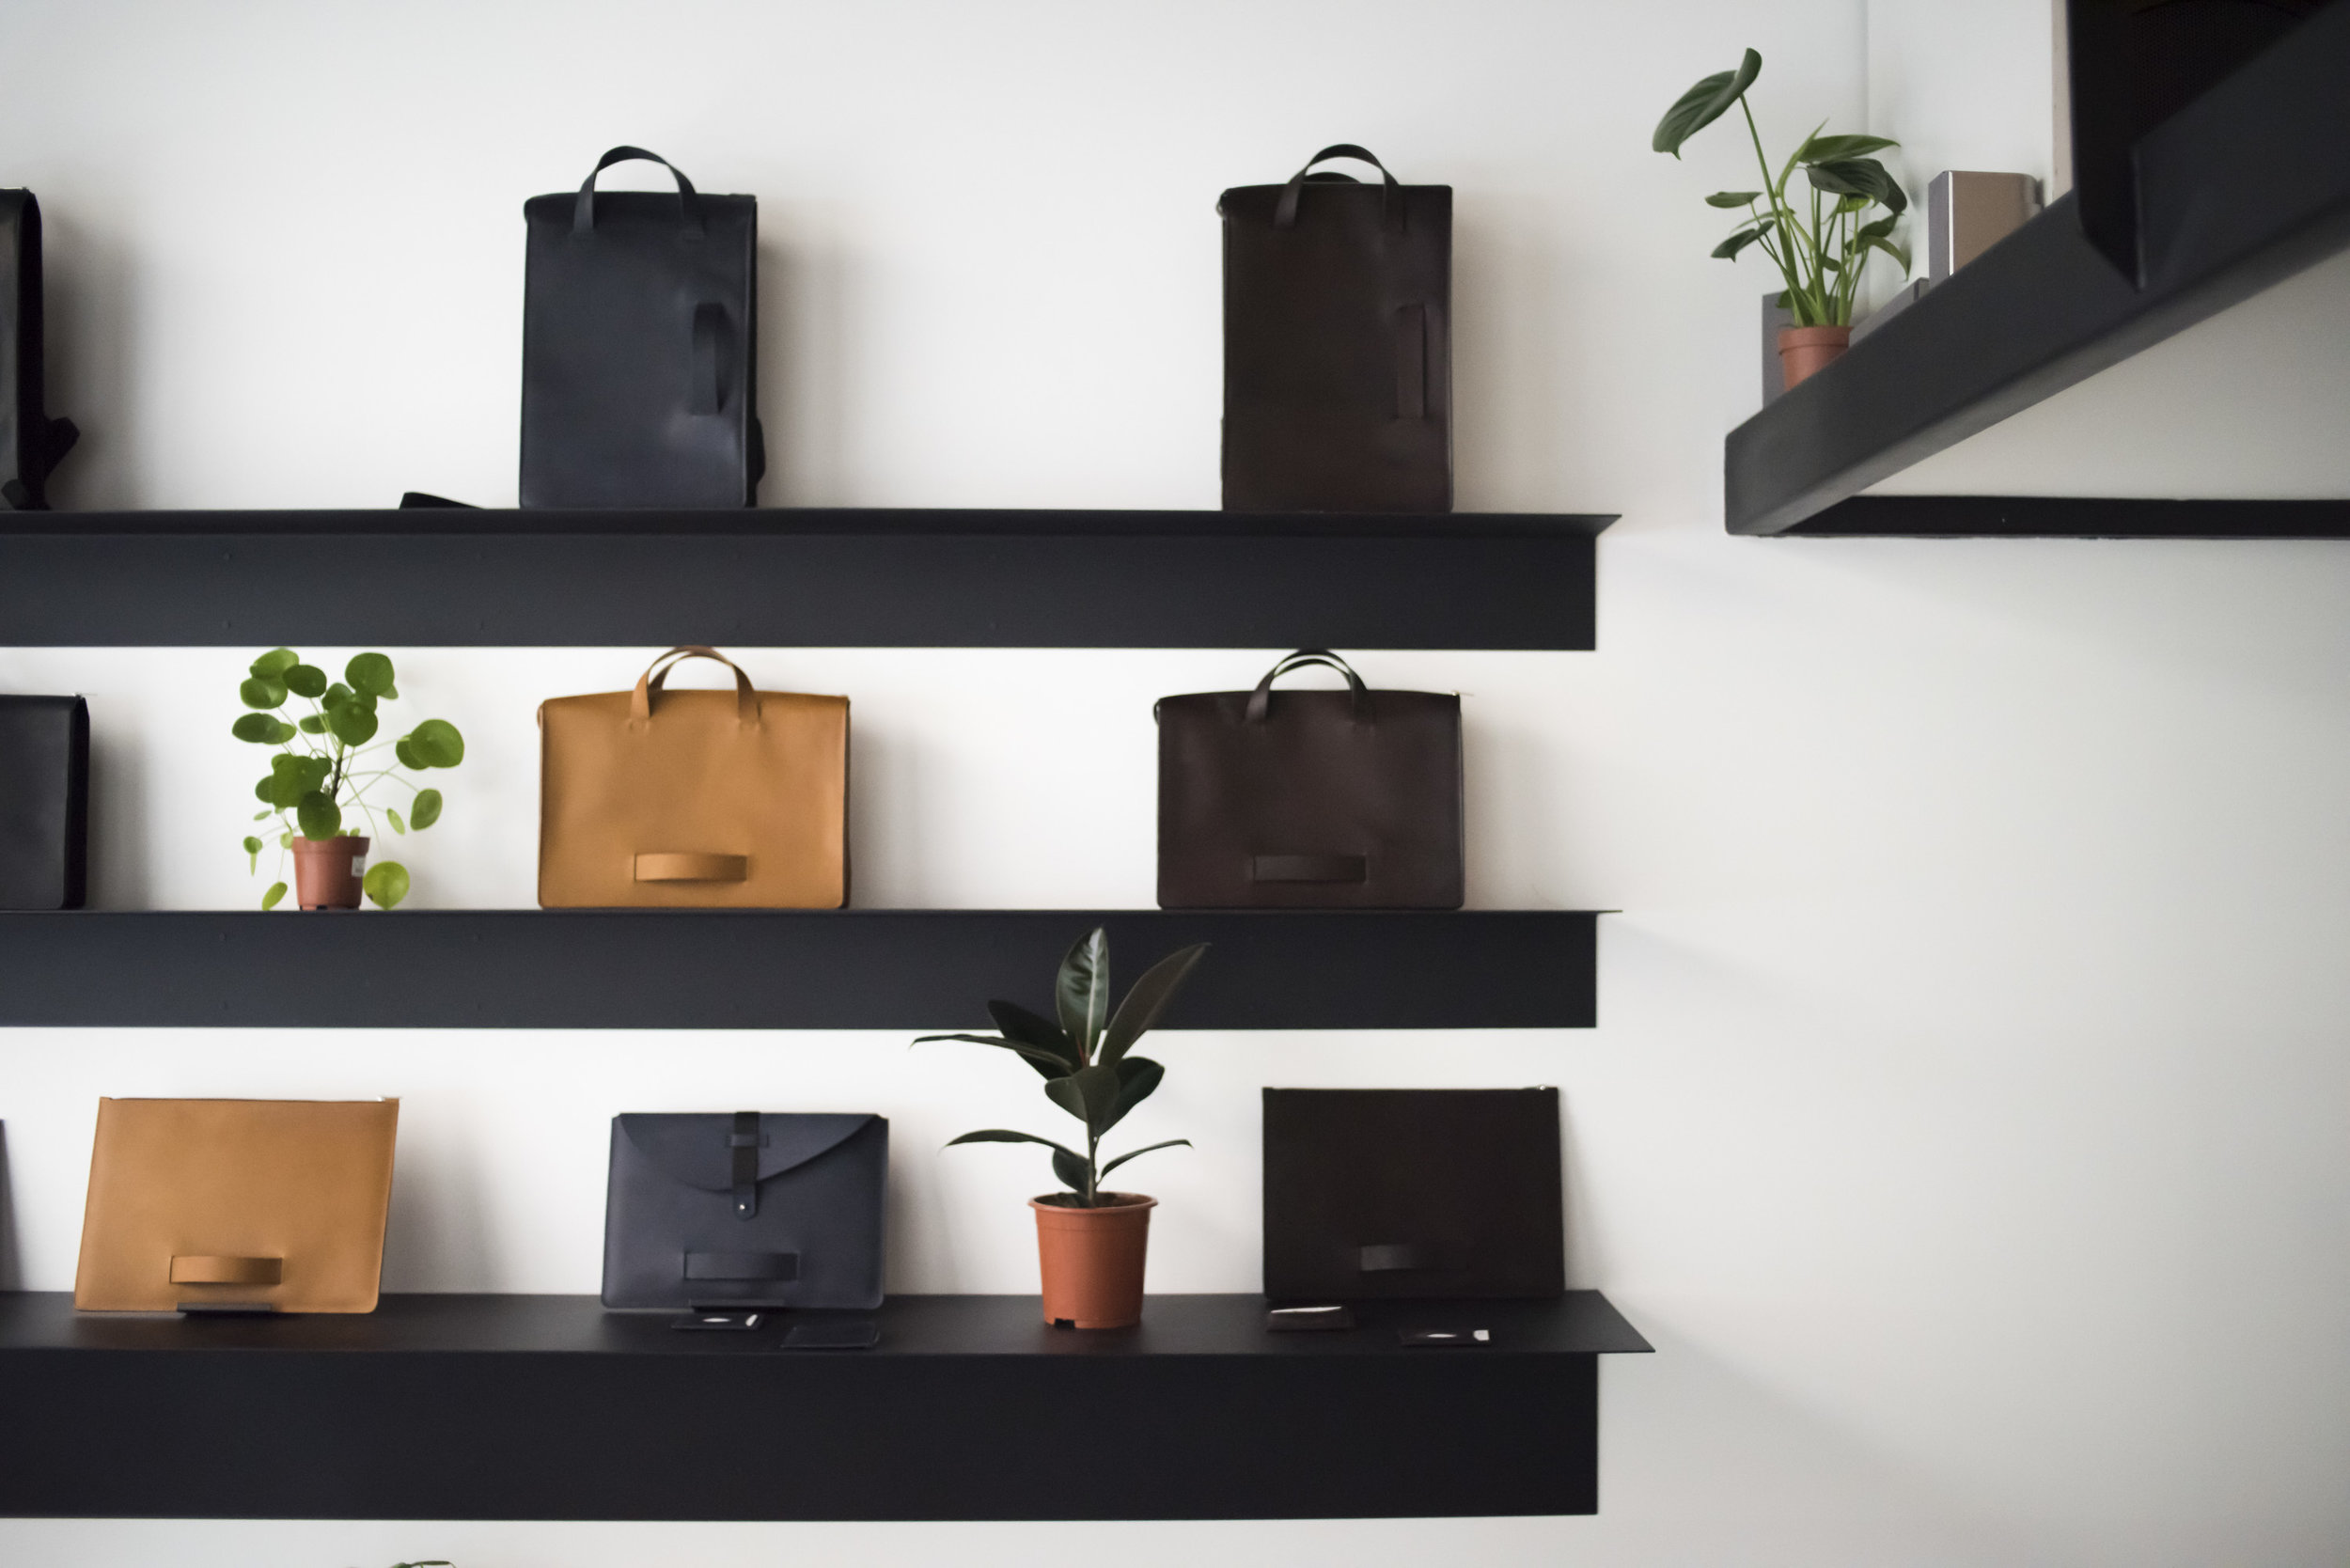 boutique store le feuillet 4 rue des forces lyon maroquinerie leather goods made in France